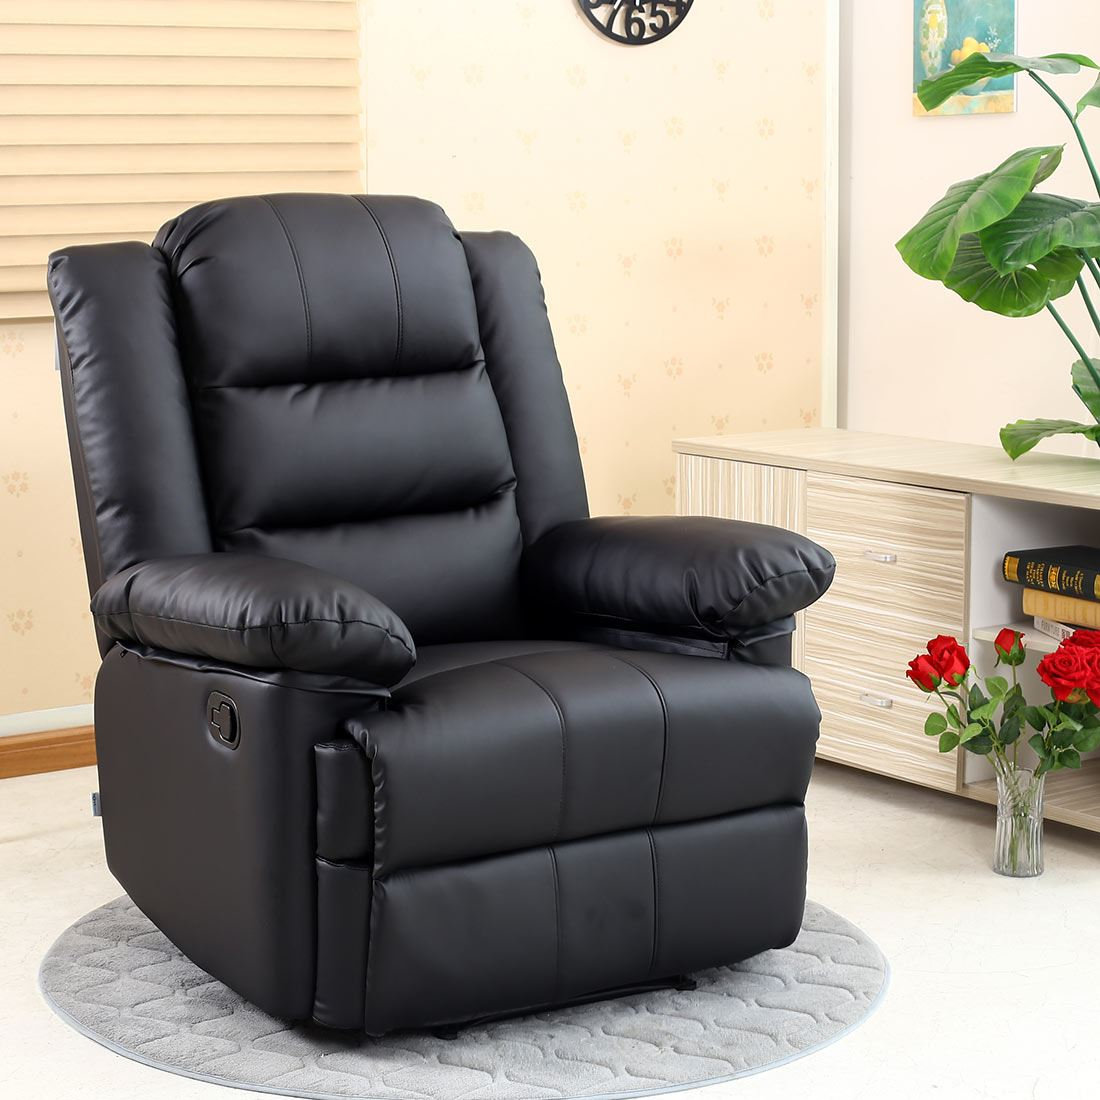 leather lounge armchair loxley leather recliner armchair sofa home lounge chair 16659 | e04d62bb 90e7 4358 87ee d4696e0d728e